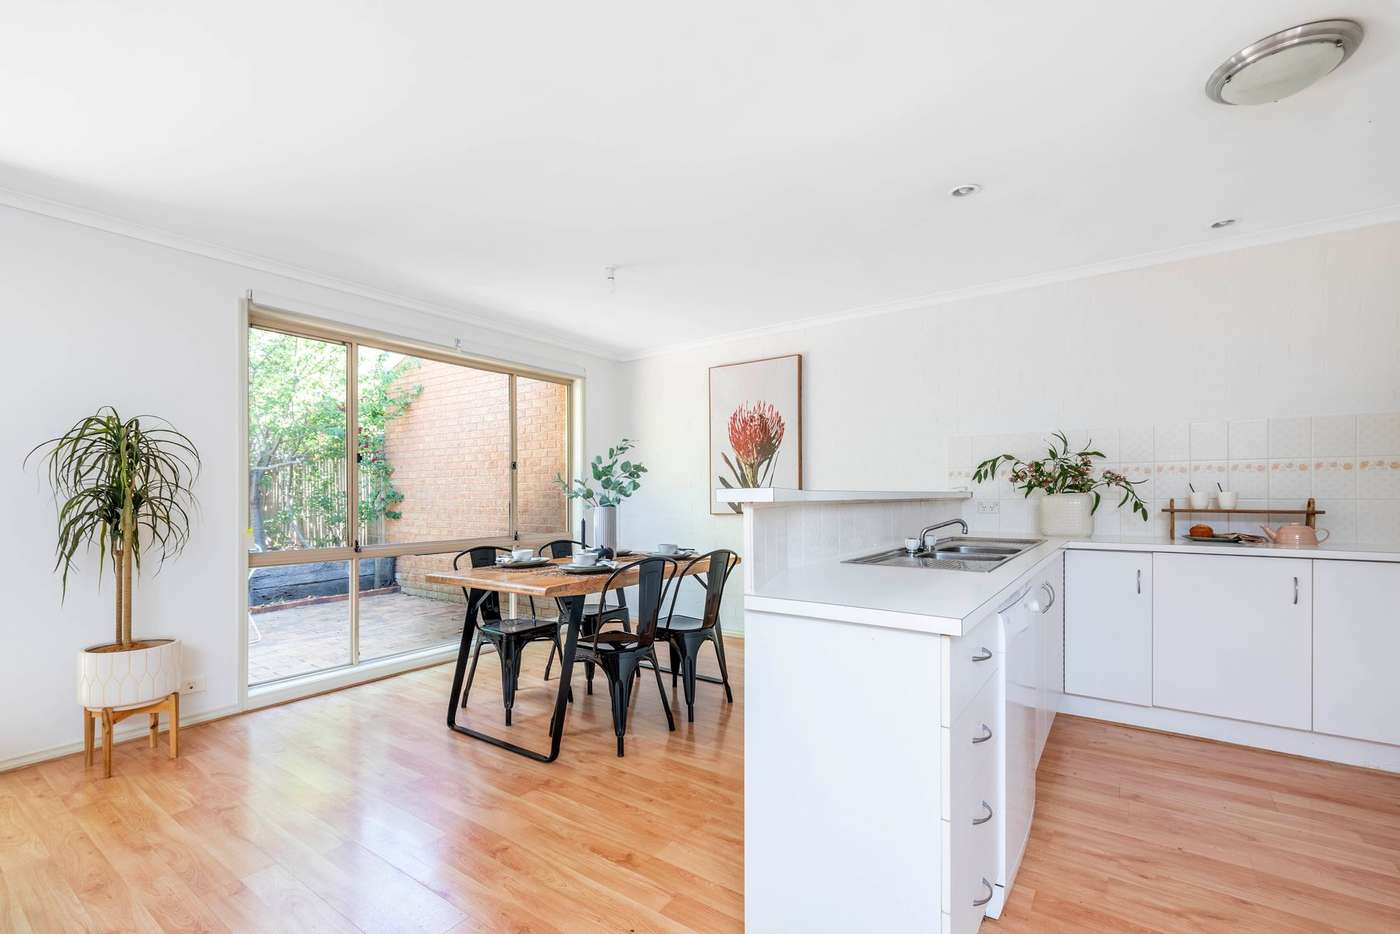 Sixth view of Homely house listing, 10/48 Goldner Circuit, Melba ACT 2615